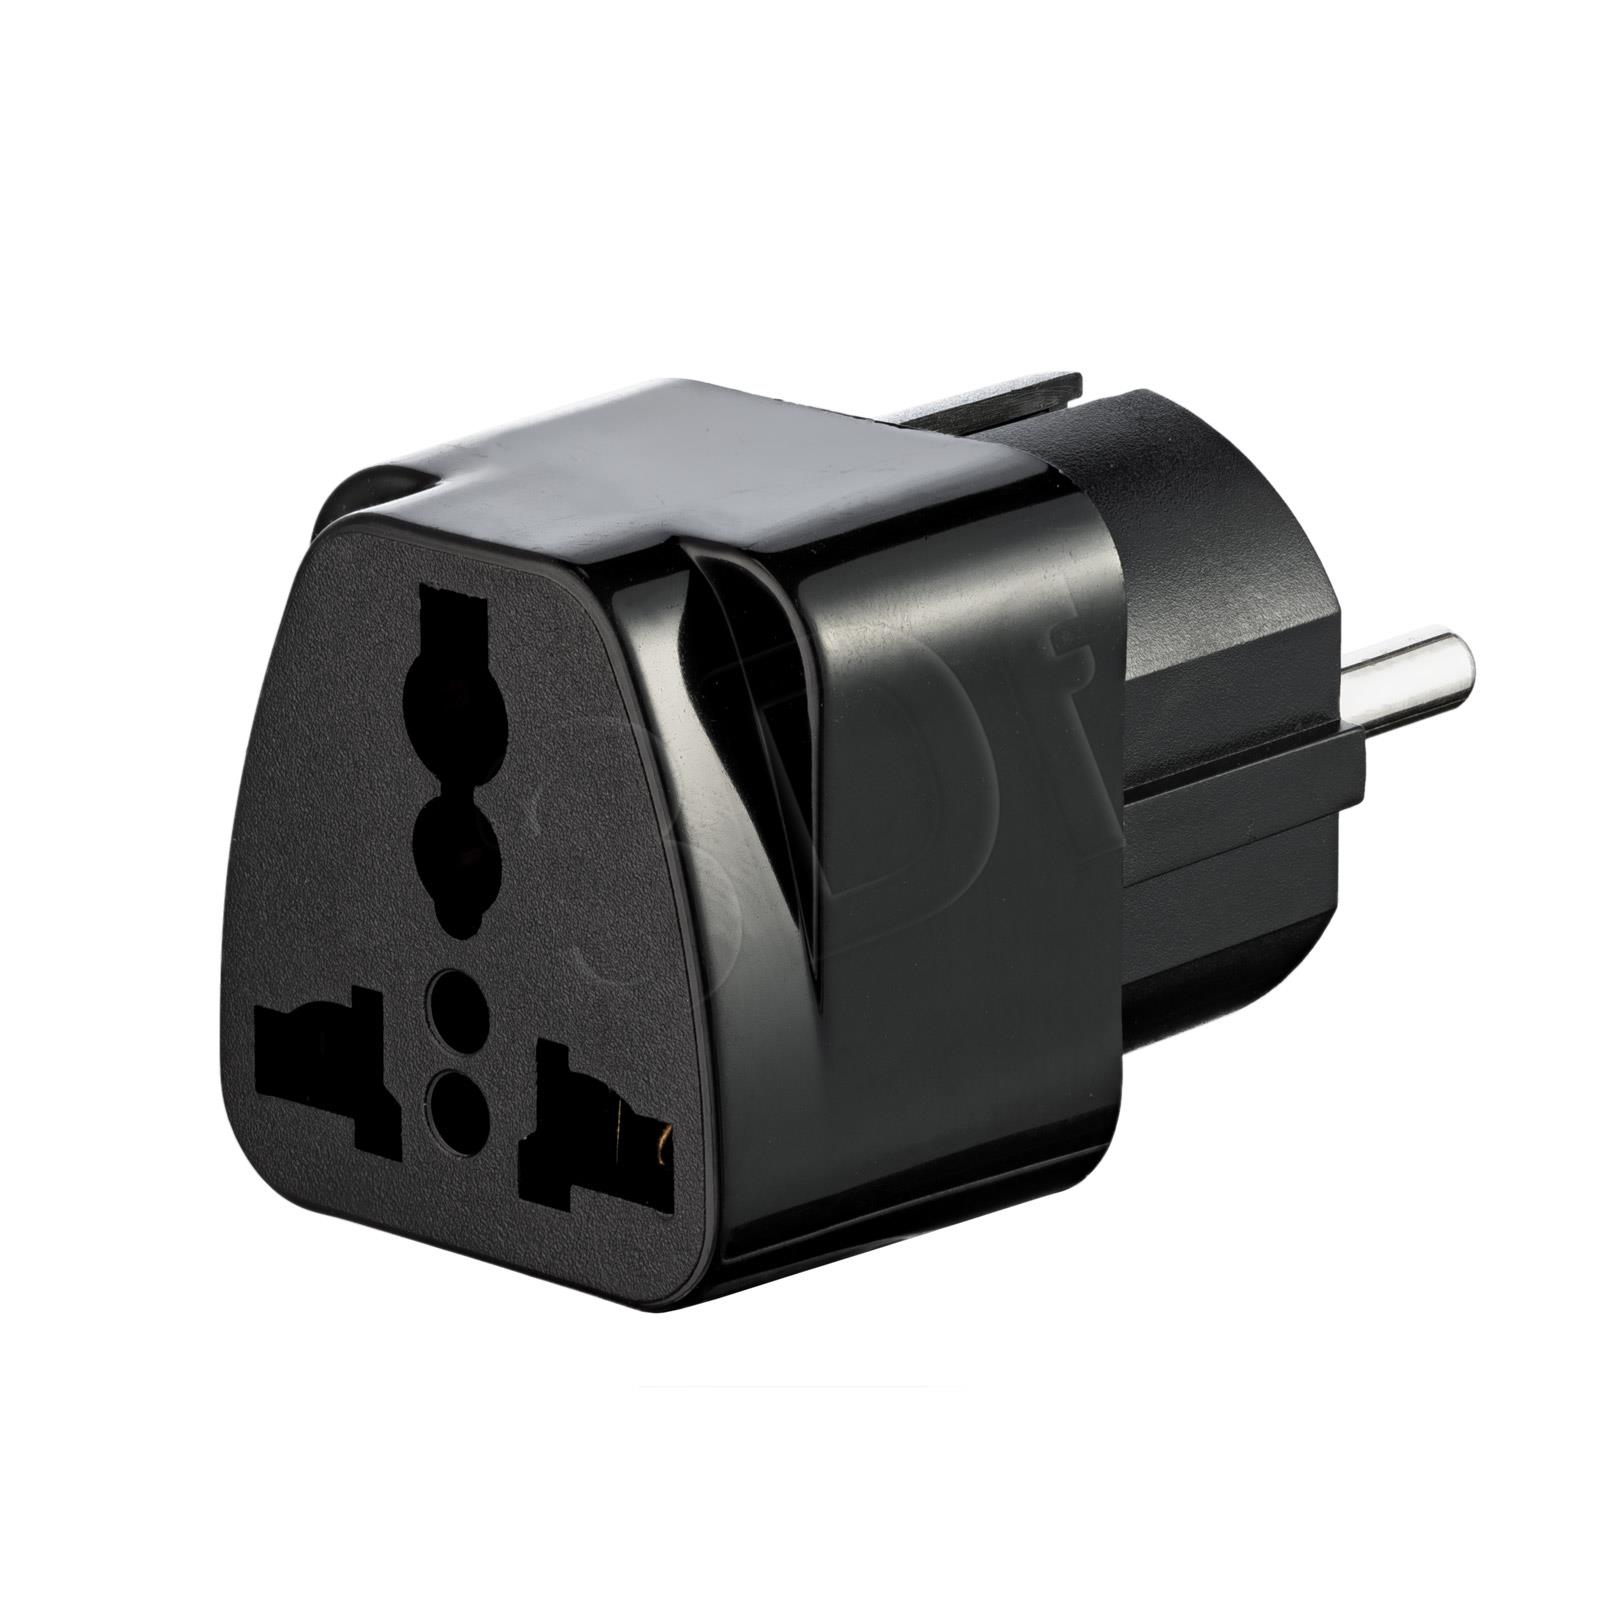 Akyga Travel Adapter AC AK-AD-48 US / AU / UK to EU black adapteris